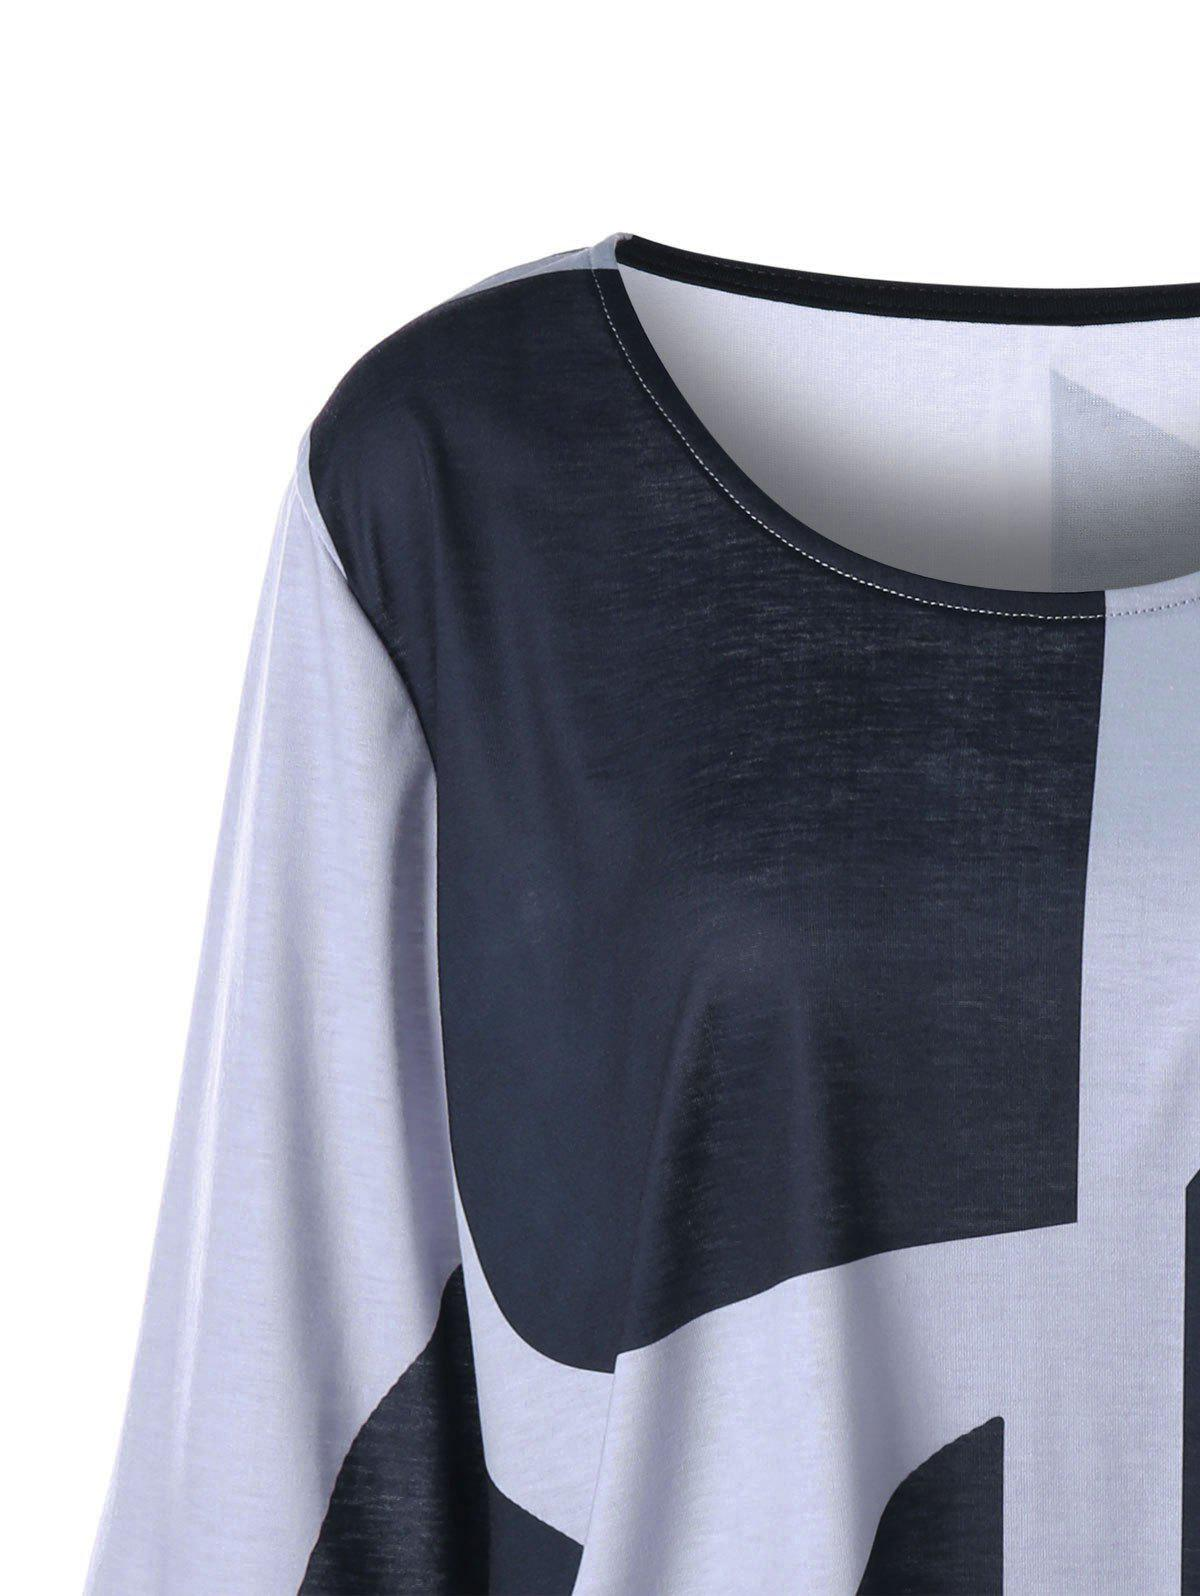 Plus Size Curved Flare Sleeve Top - BLACK/GREY 4XL